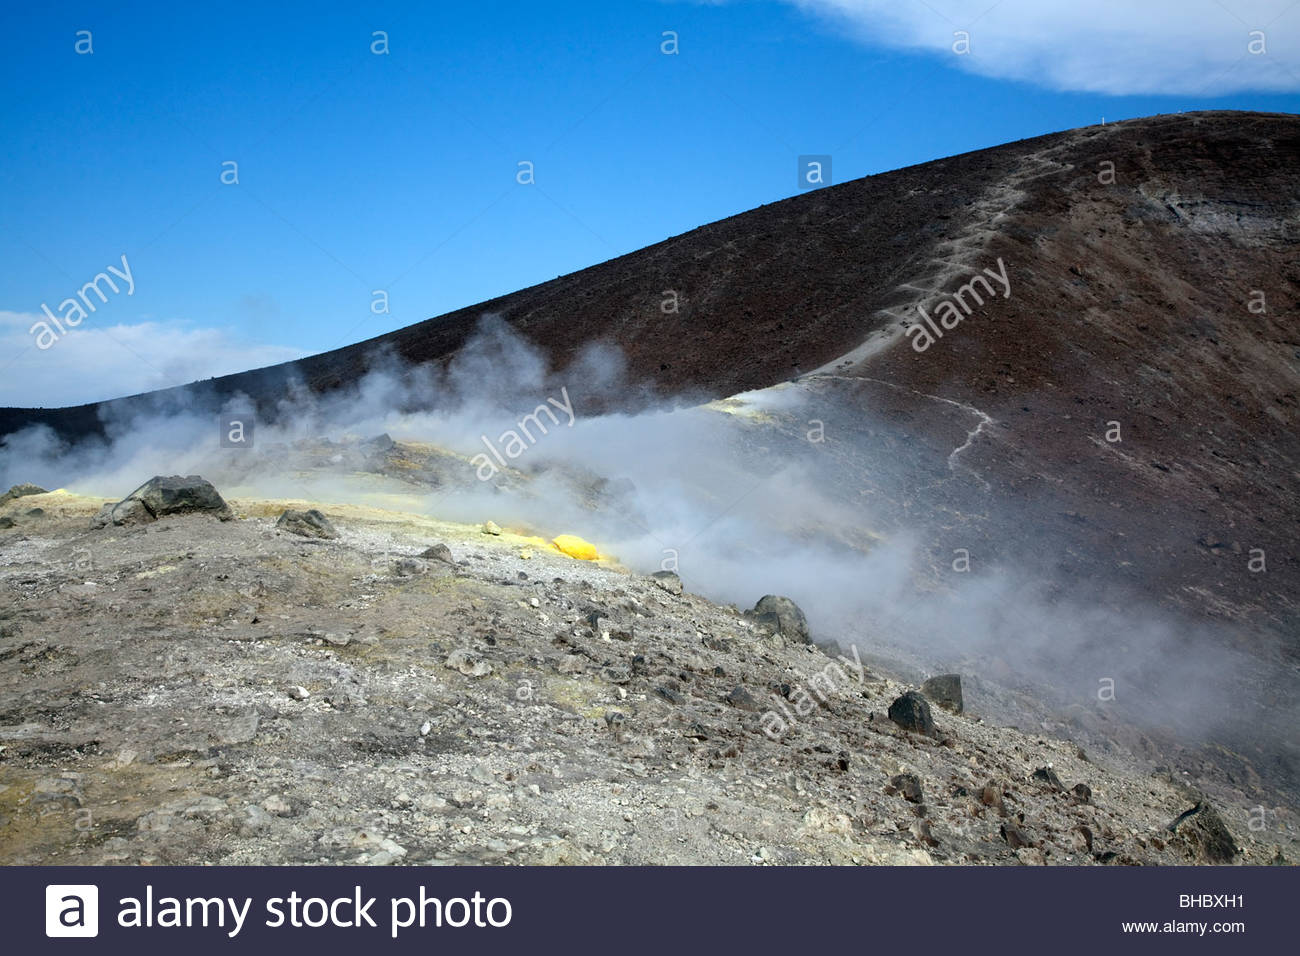 Vulcano, one of the Aeolian Islands of Italy - Stock Image